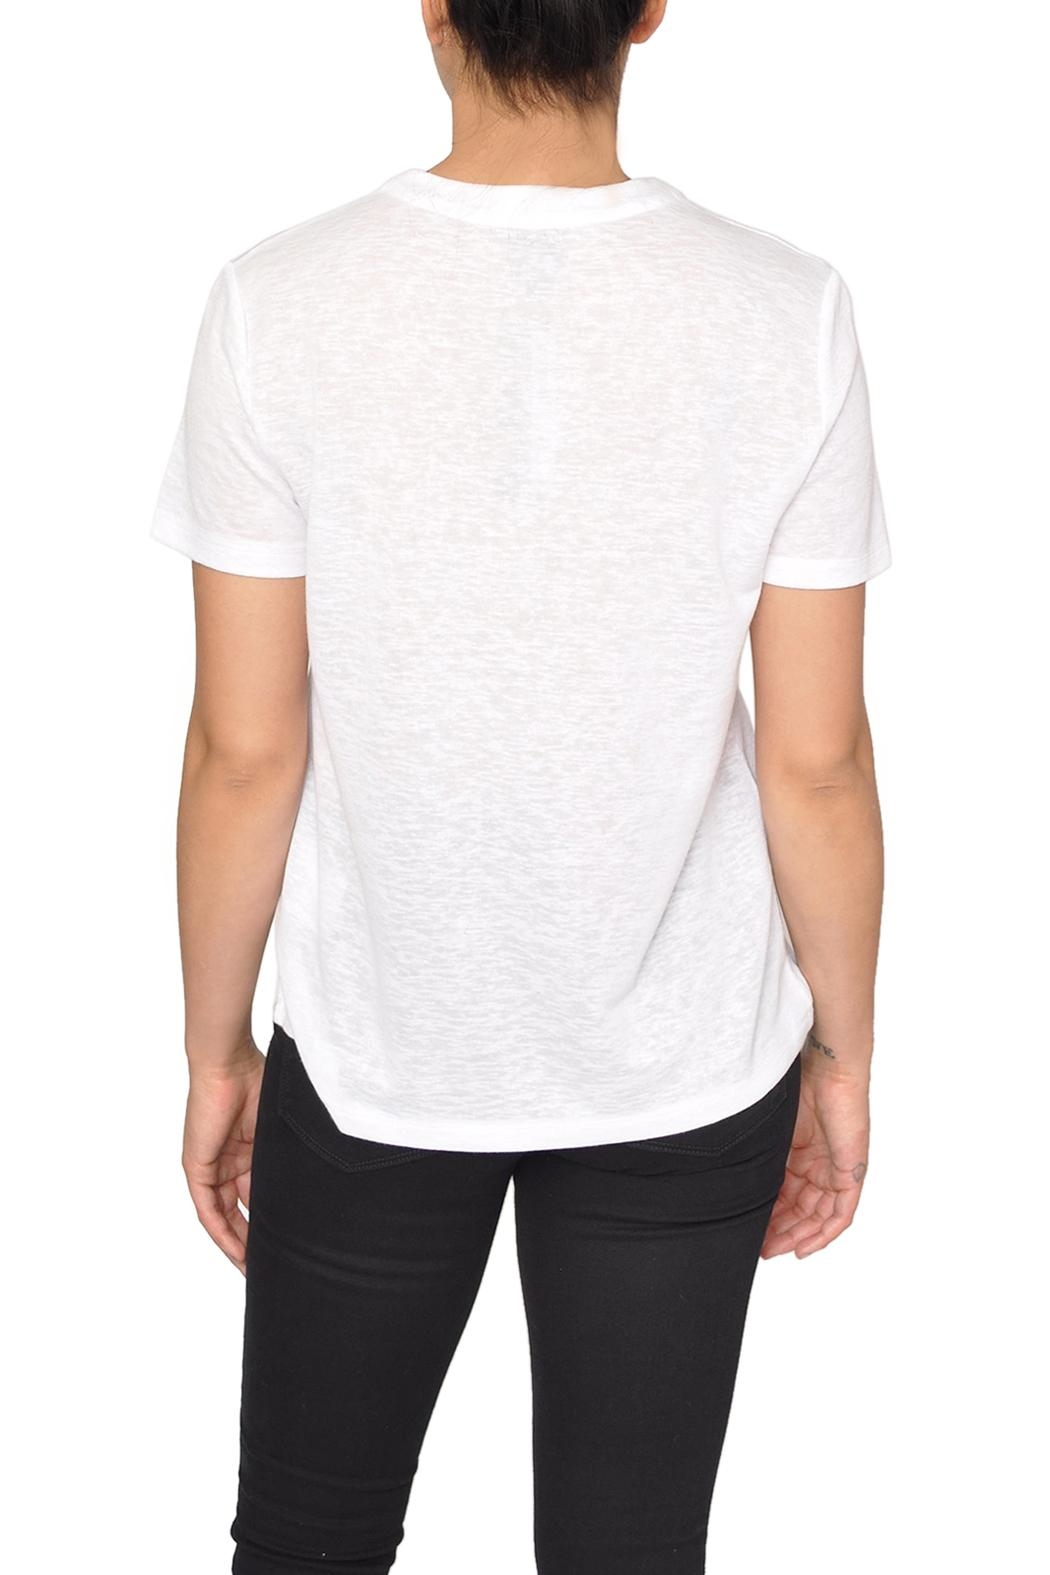 CAARA White Lace-Up Tee - Front Full Image